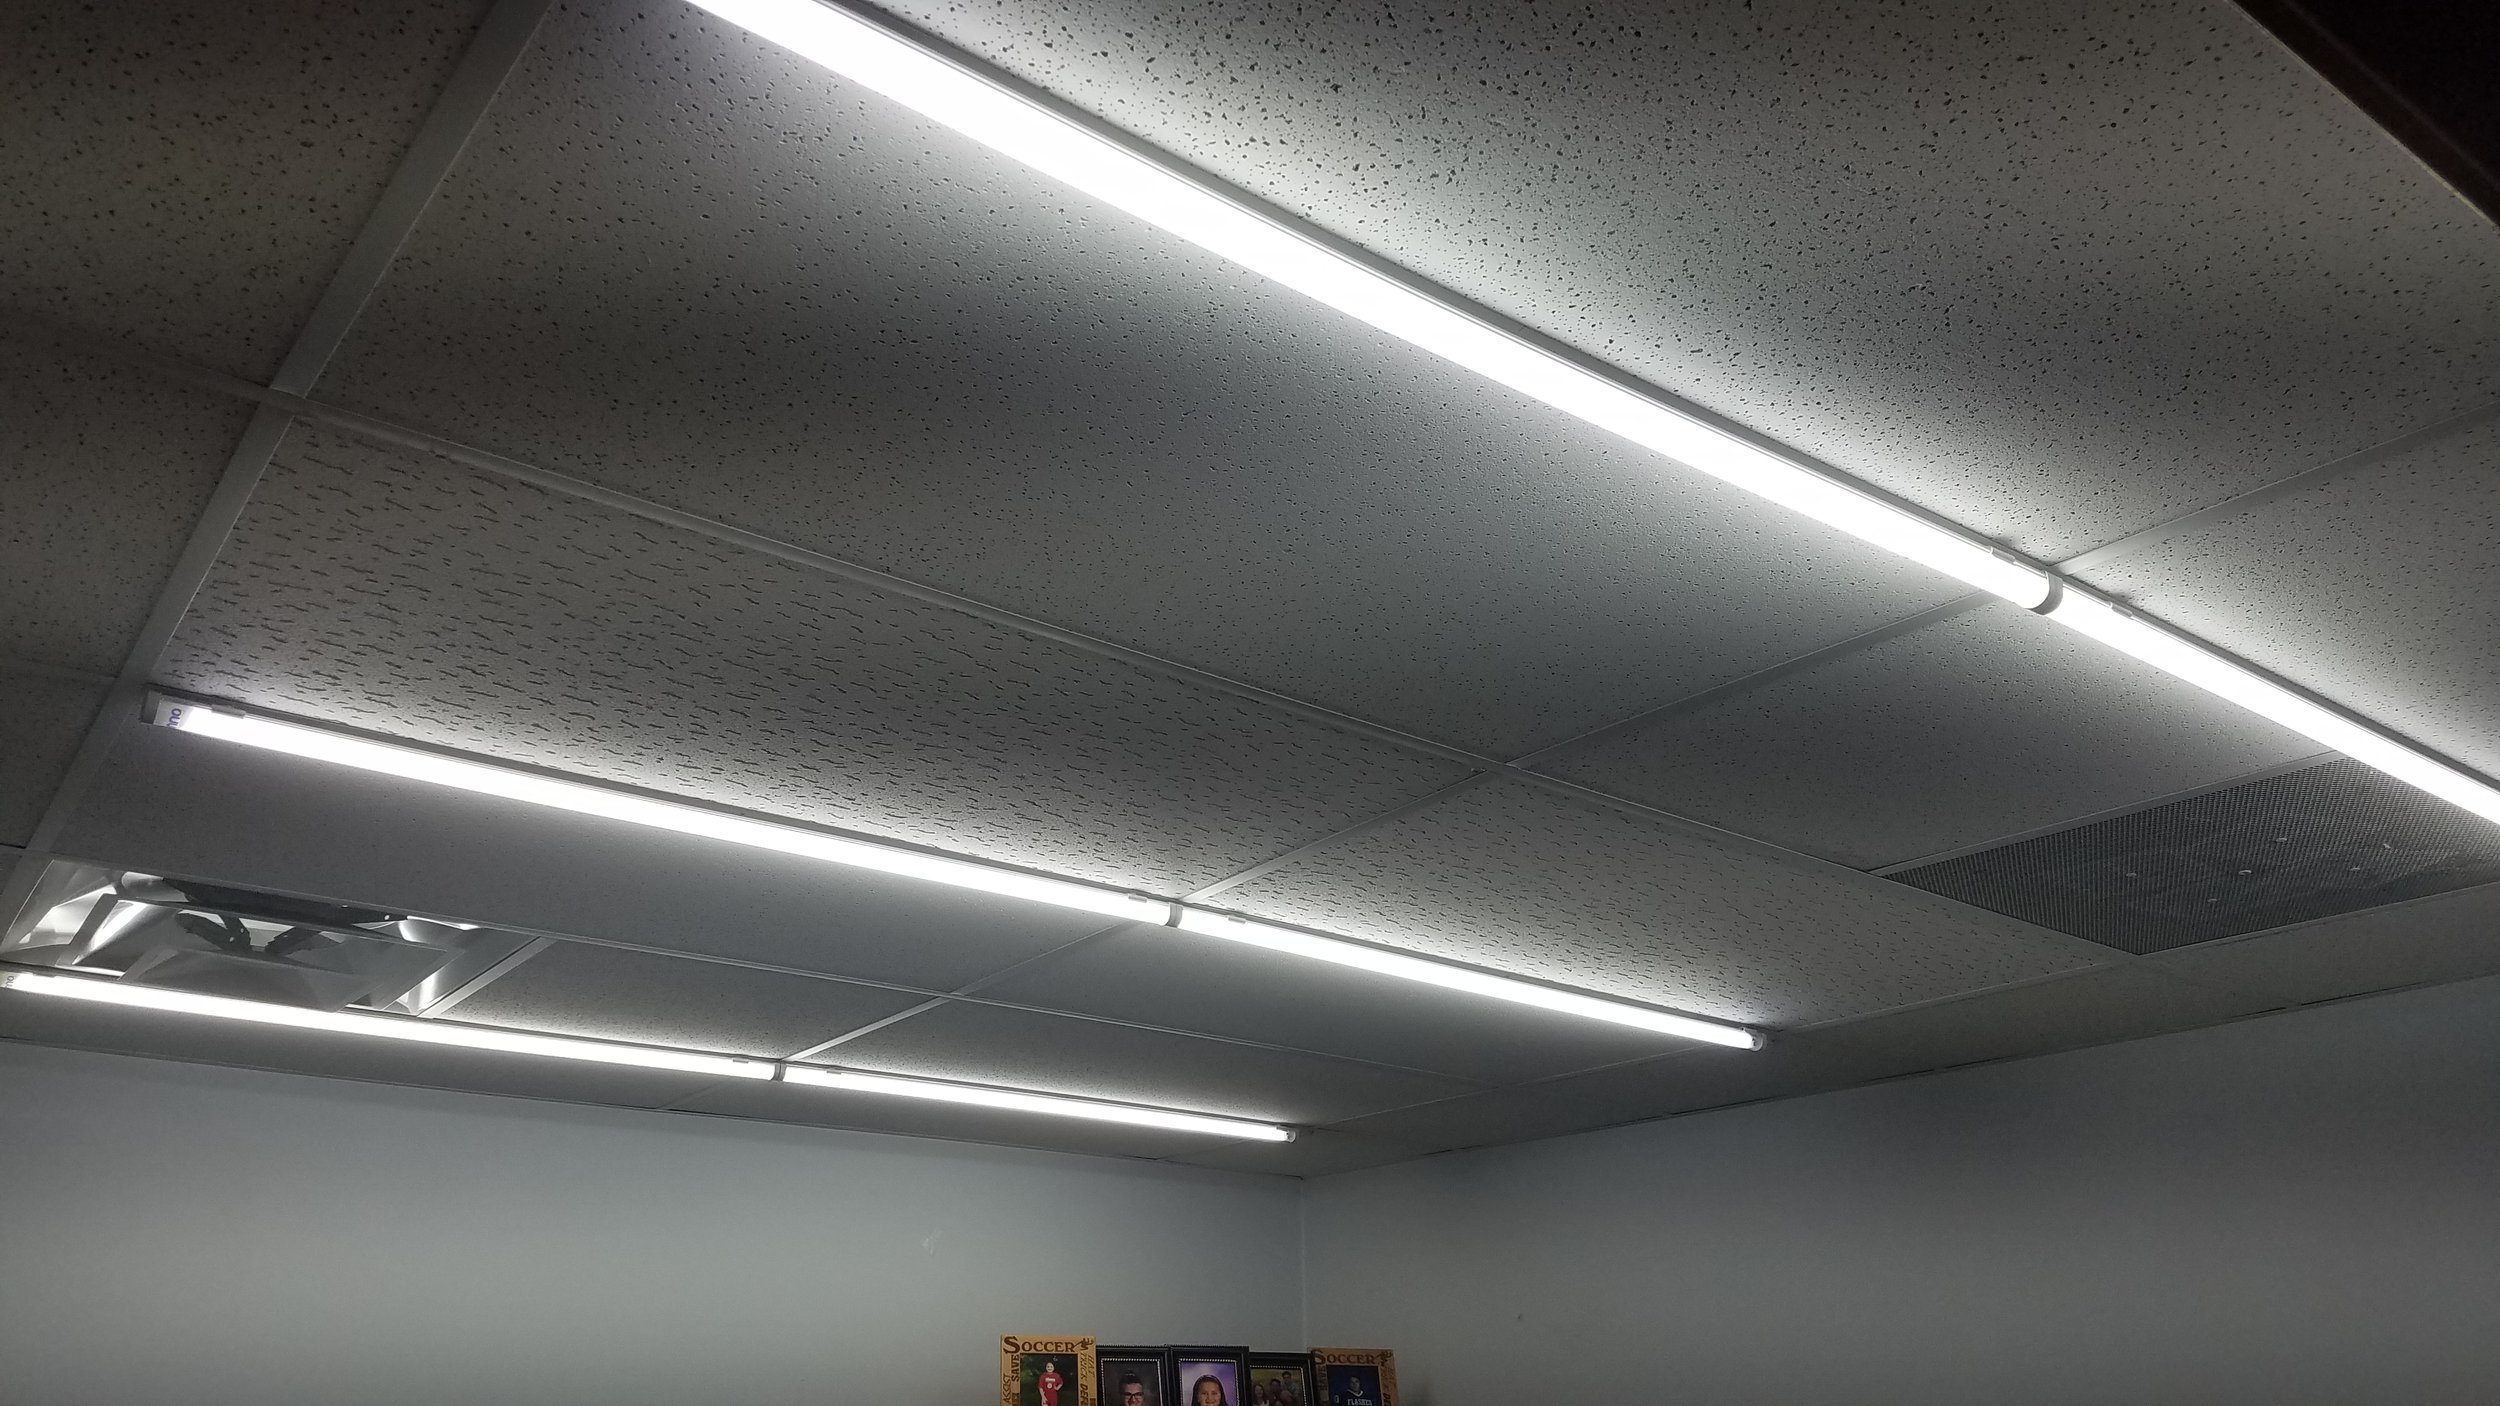 LED Slimline Linear Light Fixtures in a drop ceiling.